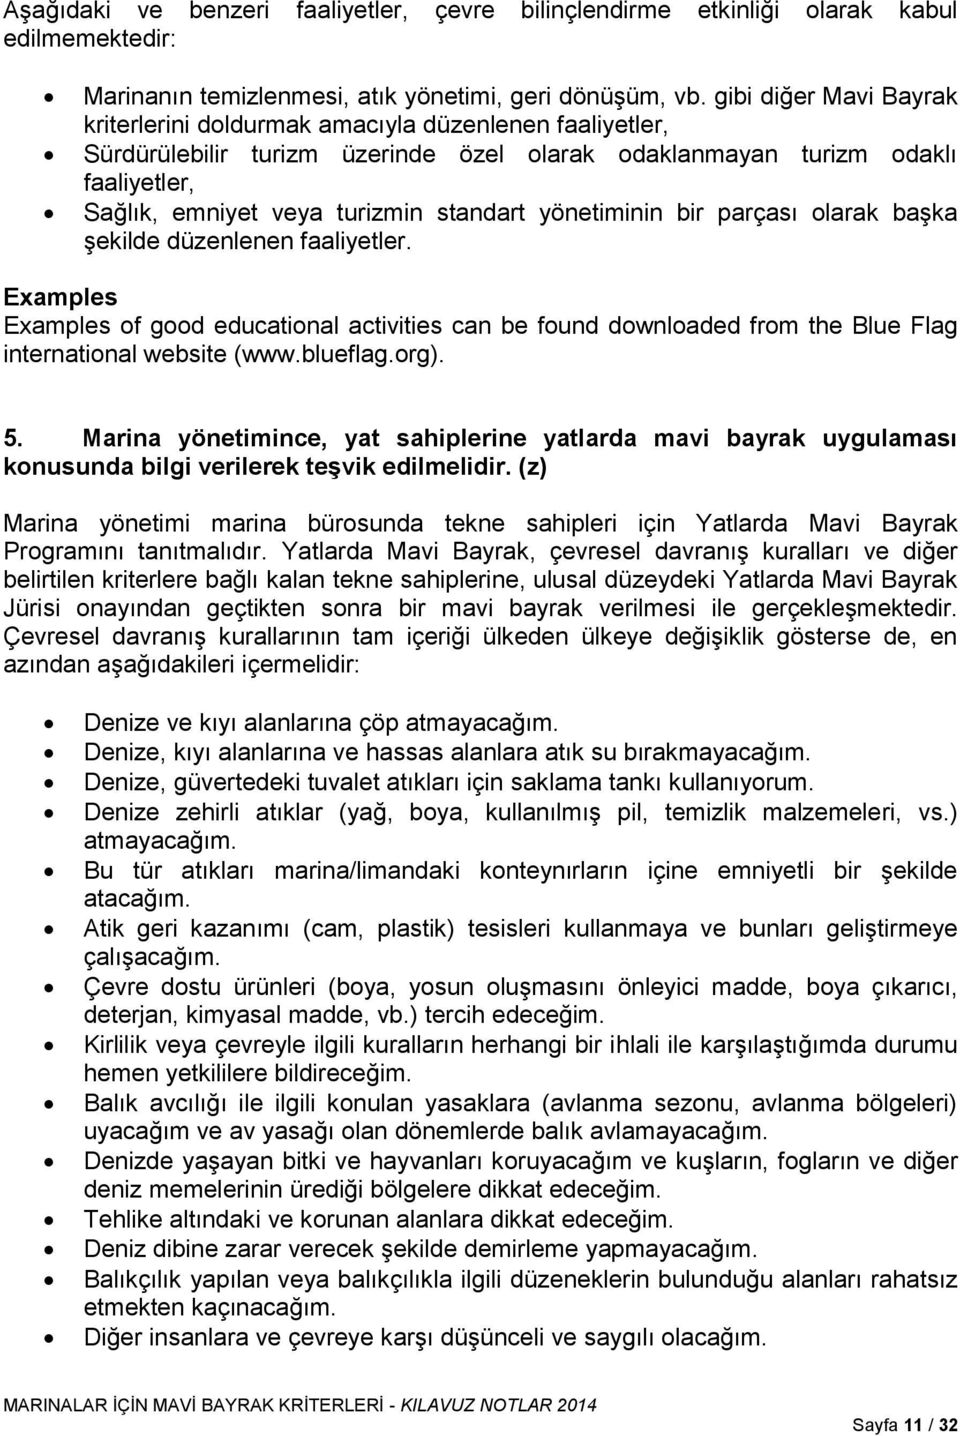 standart yönetiminin bir parçası olarak başka şekilde düzenlenen faaliyetler. Examples Examples of good educational activities can be found downloaded from the Blue Flag international website (www.